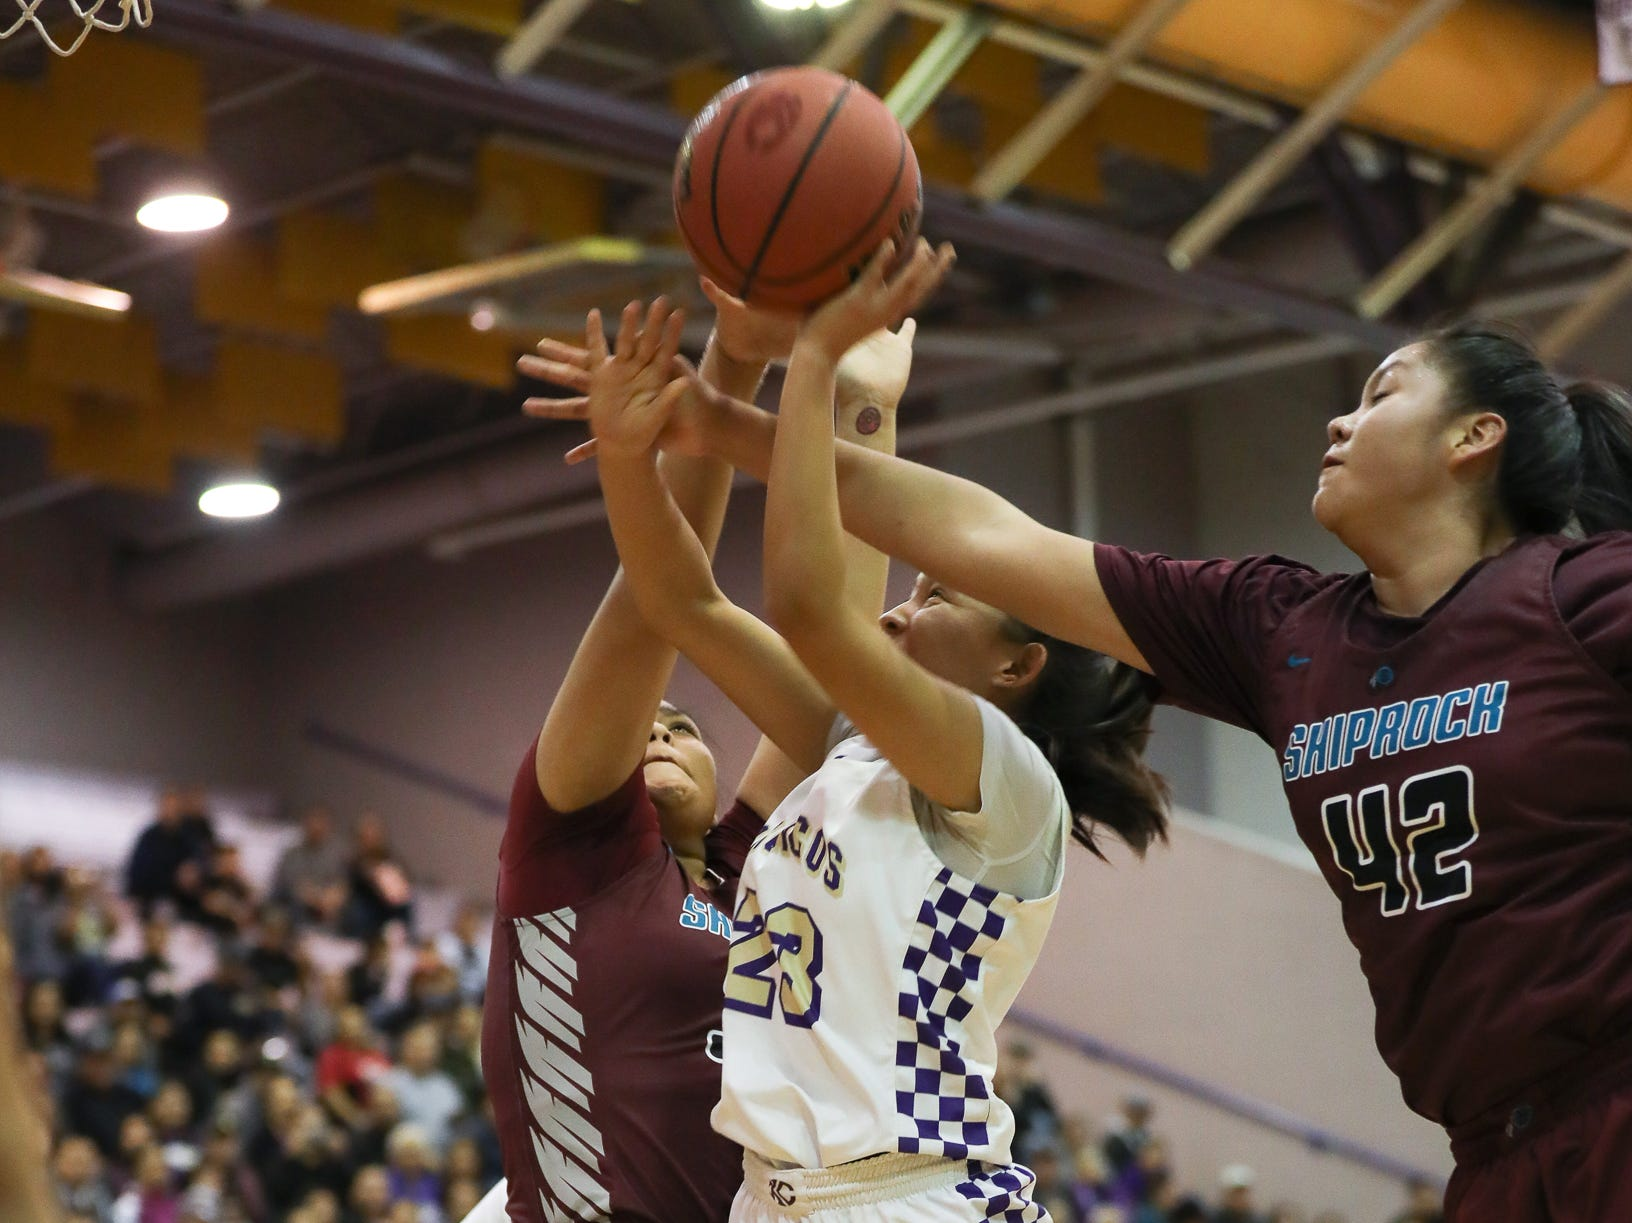 Kirtland Central's Avery Begay is fouled by Shiprock's Doniah Gruber (33) and Evette Lansing (42) during Friday's 4A playoff opener at Bronco Arena in Kirtland.